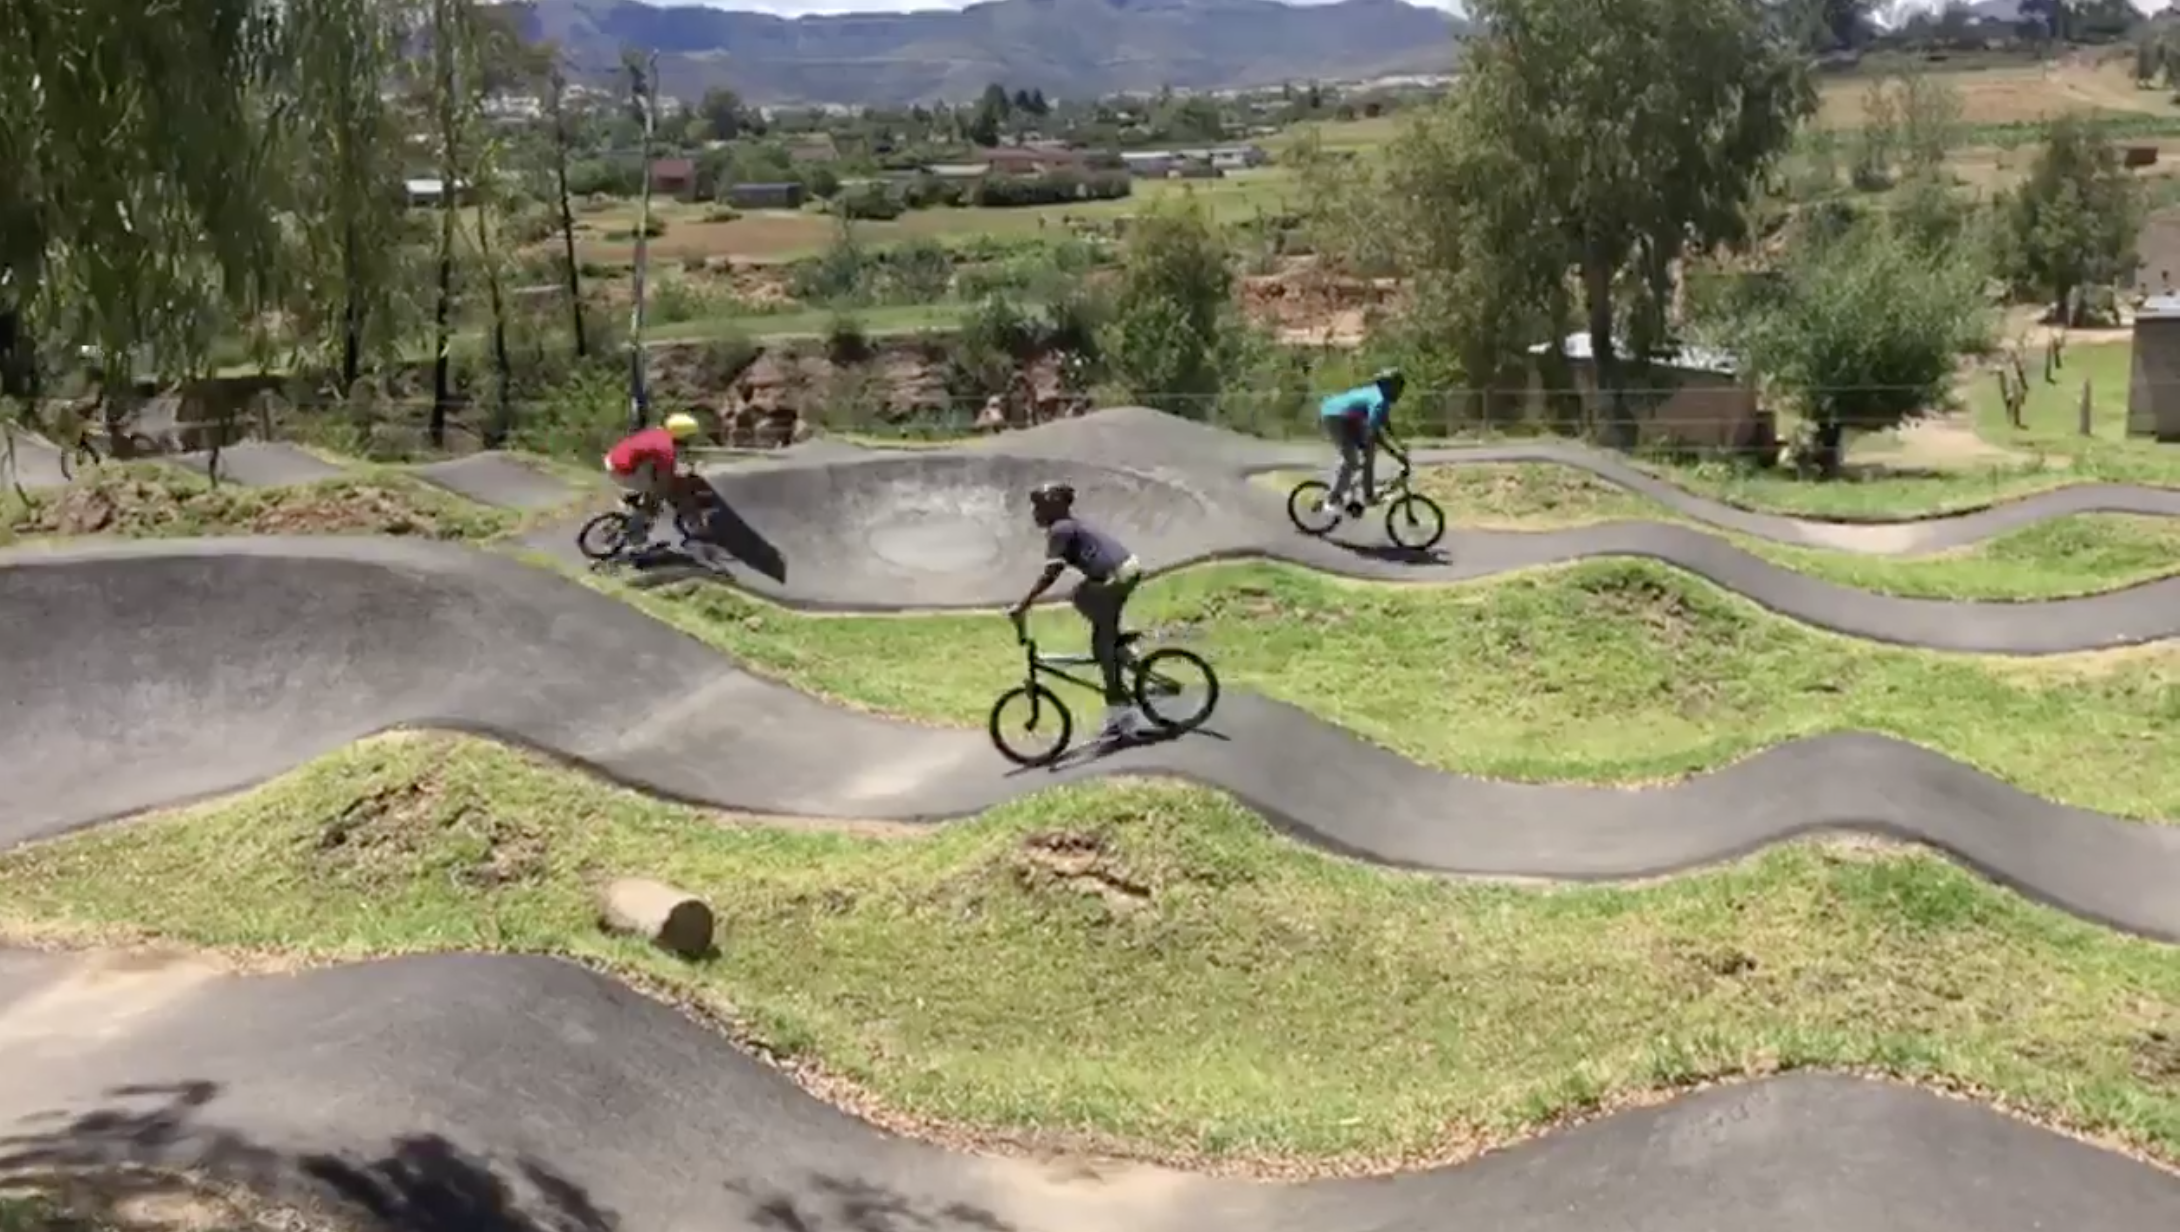 GETTING PUMPED - Kids keep busy at the pump track in Roma, set up by the local Mike's Bikes Sister Shop.